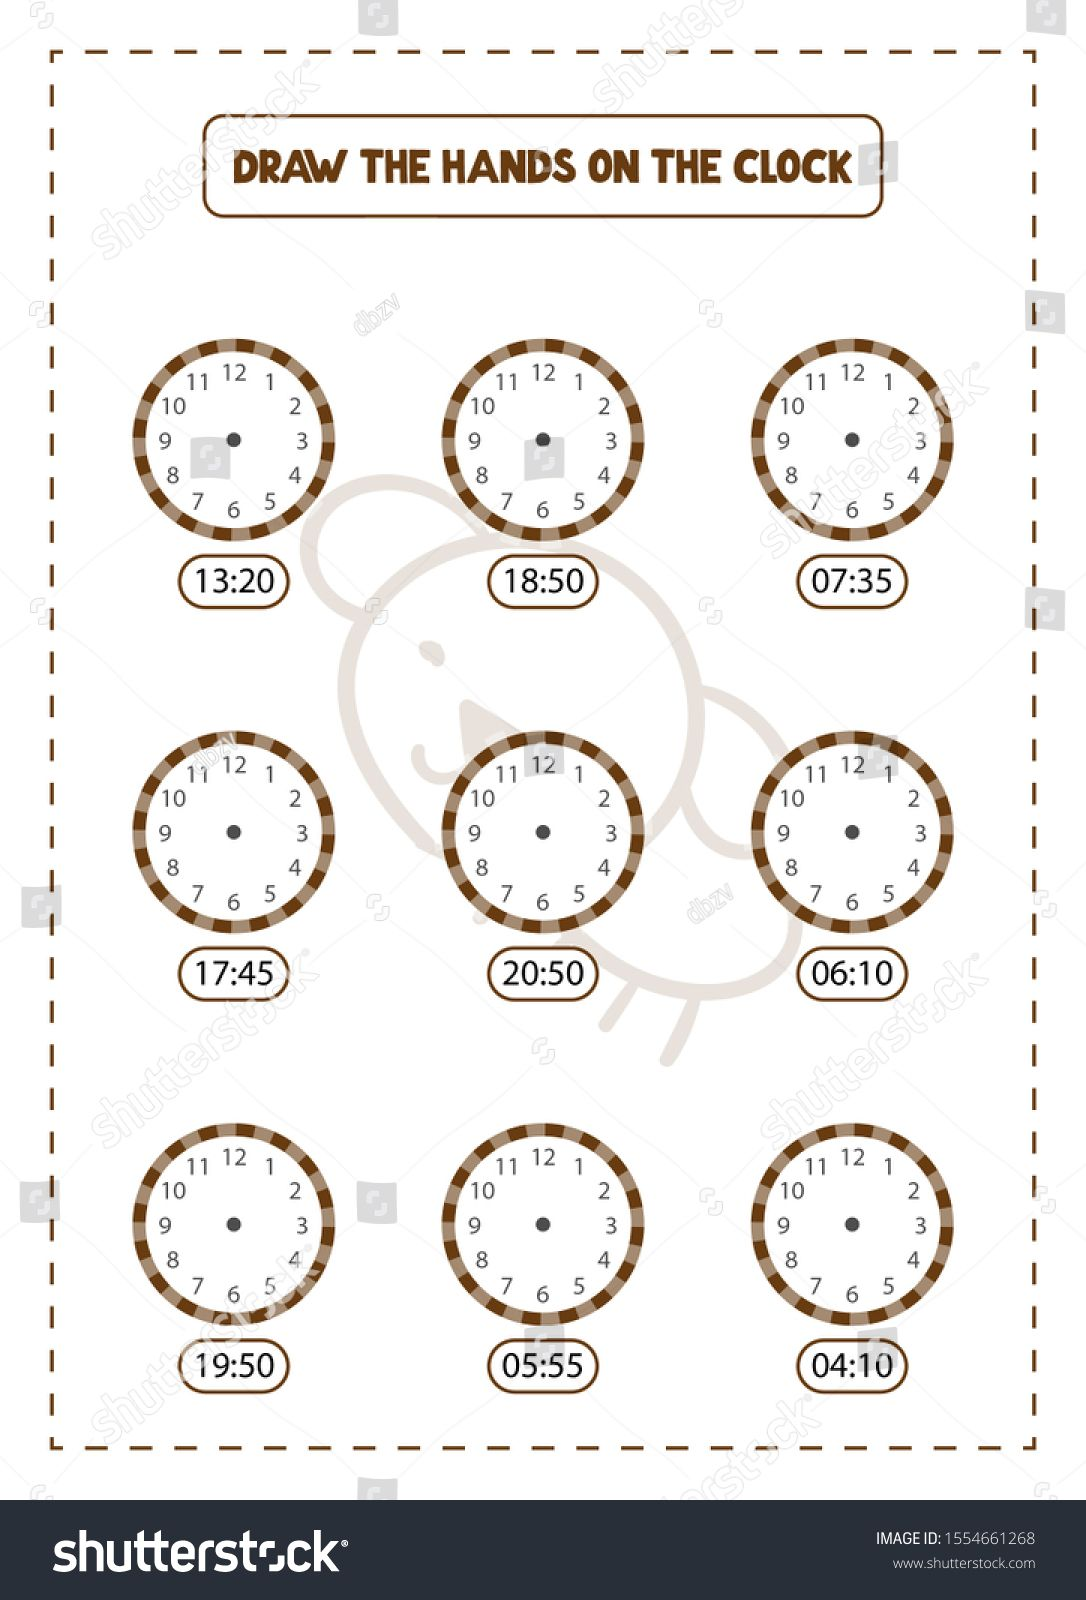 Draw The Hands On The Clock Game Educational Exercises